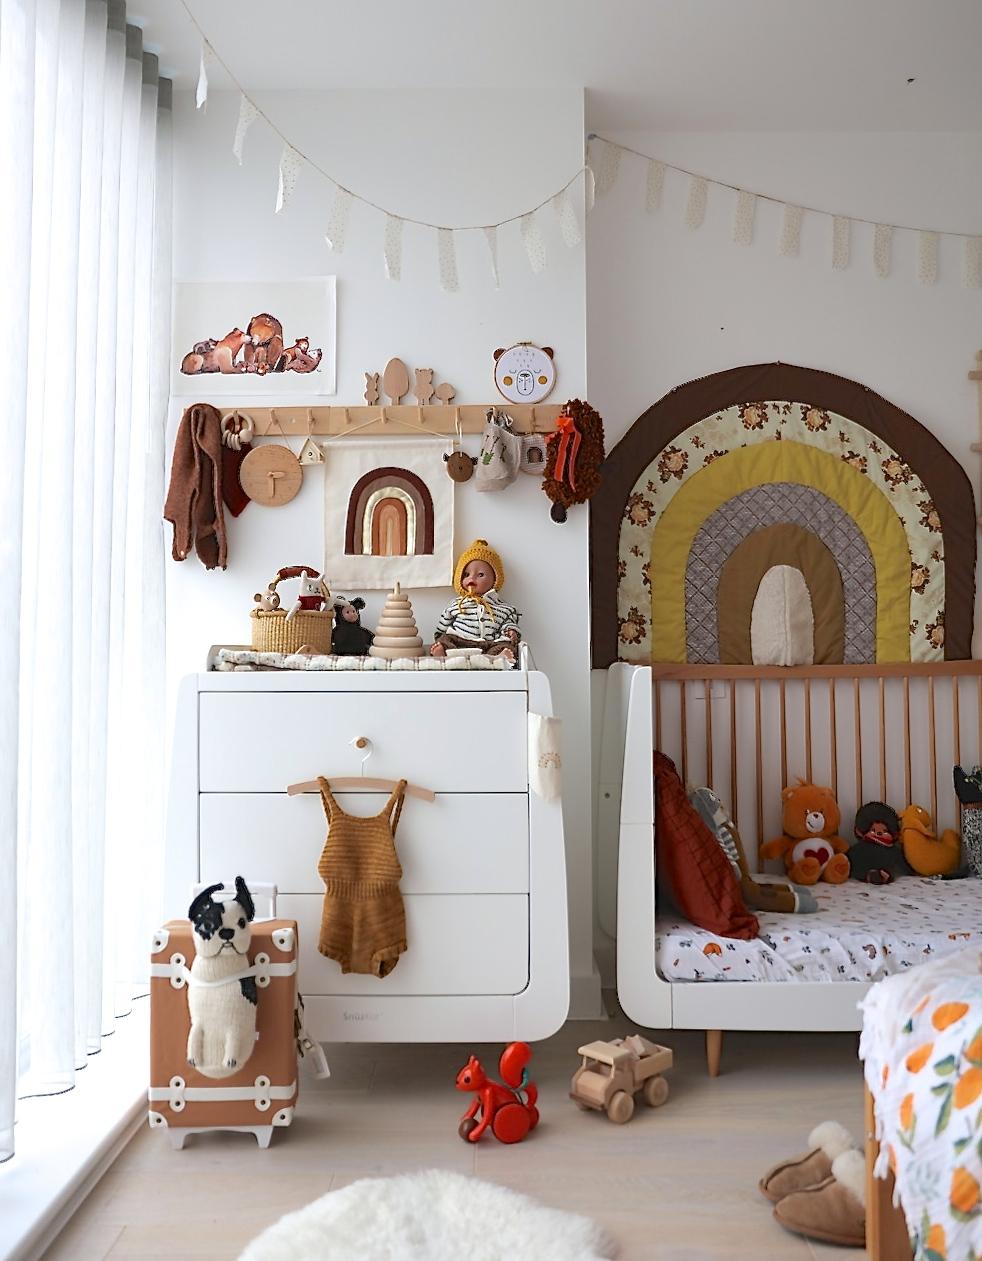 Chloe Uber Kid - My Rainbow Nursery - Blog Post - November 2018